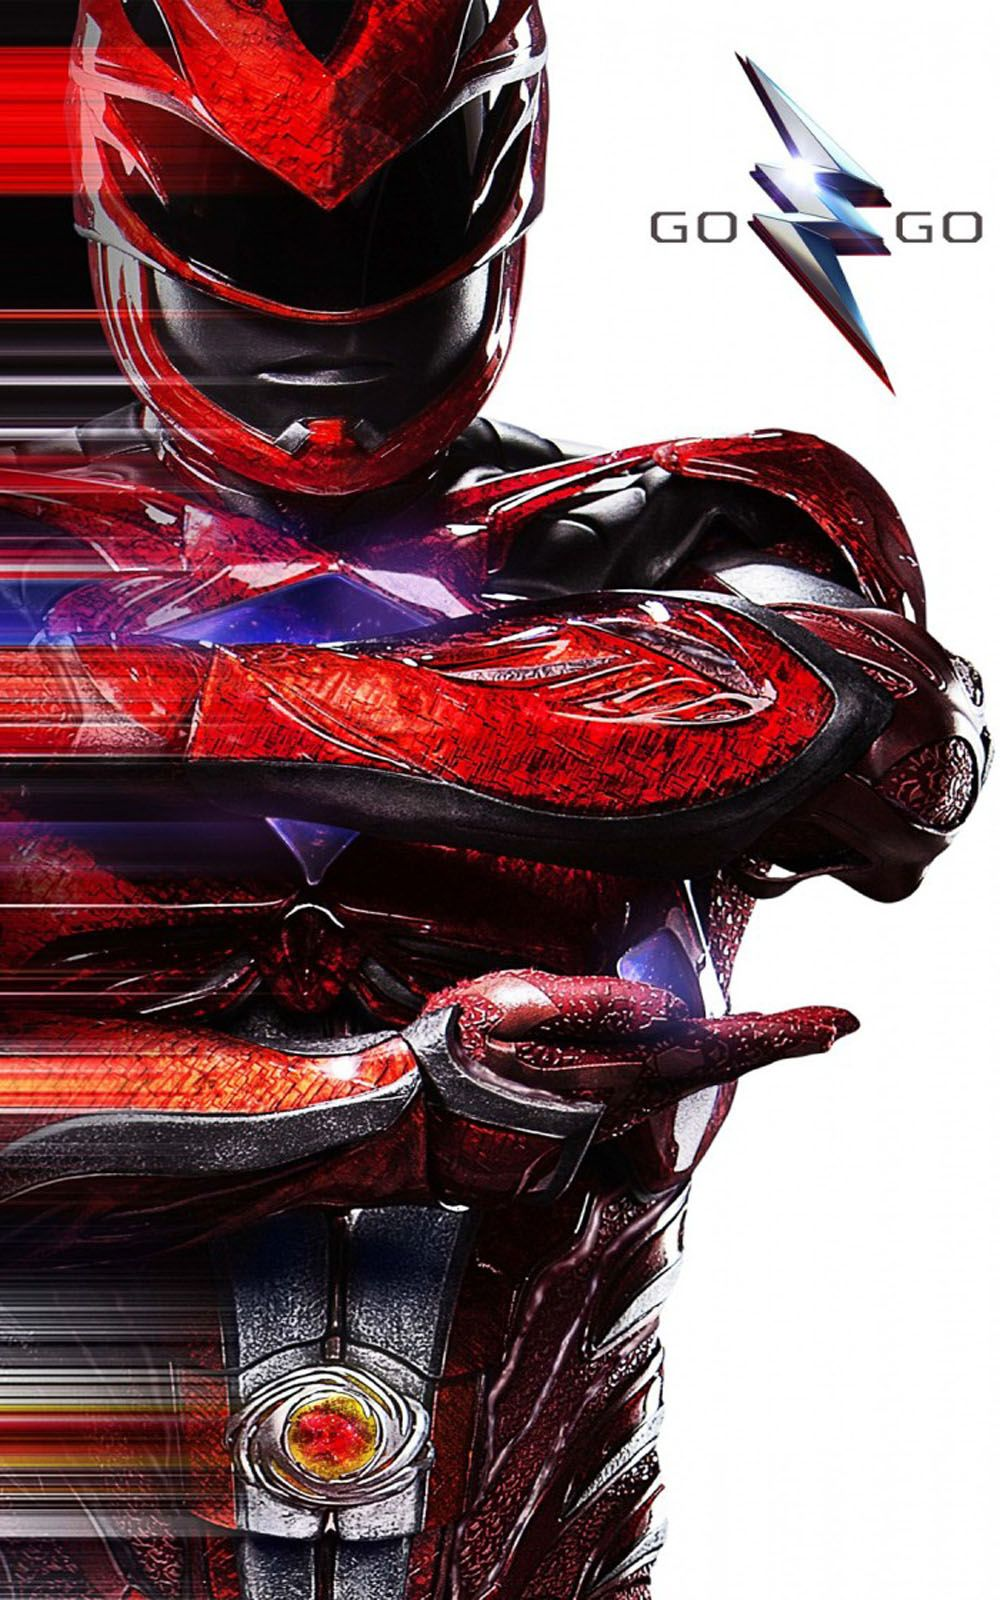 1000x1600 Power Rangers Red Ranger - Download Free HD Mobile Wallpapers